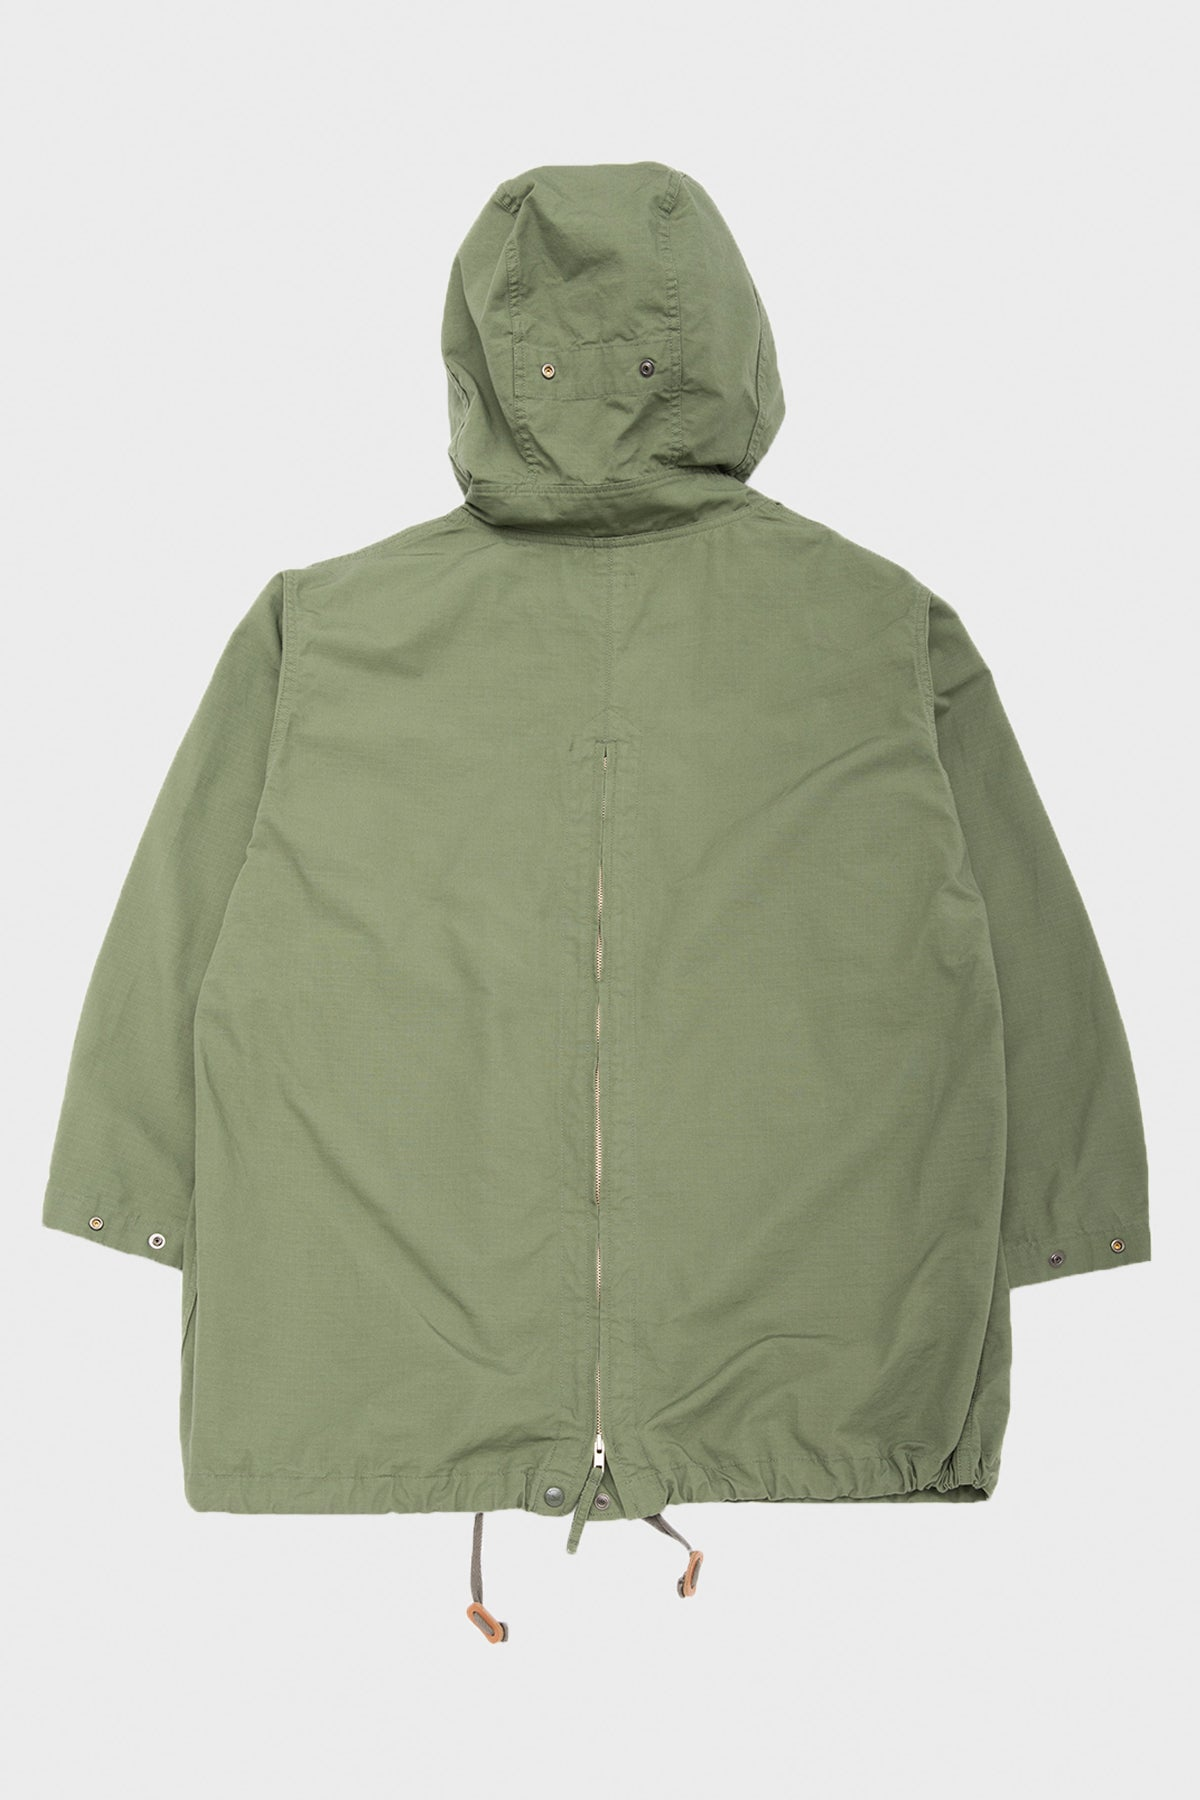 Engineered Garments - Over Parka - Olive Cotton Ripstop - Canoe Club